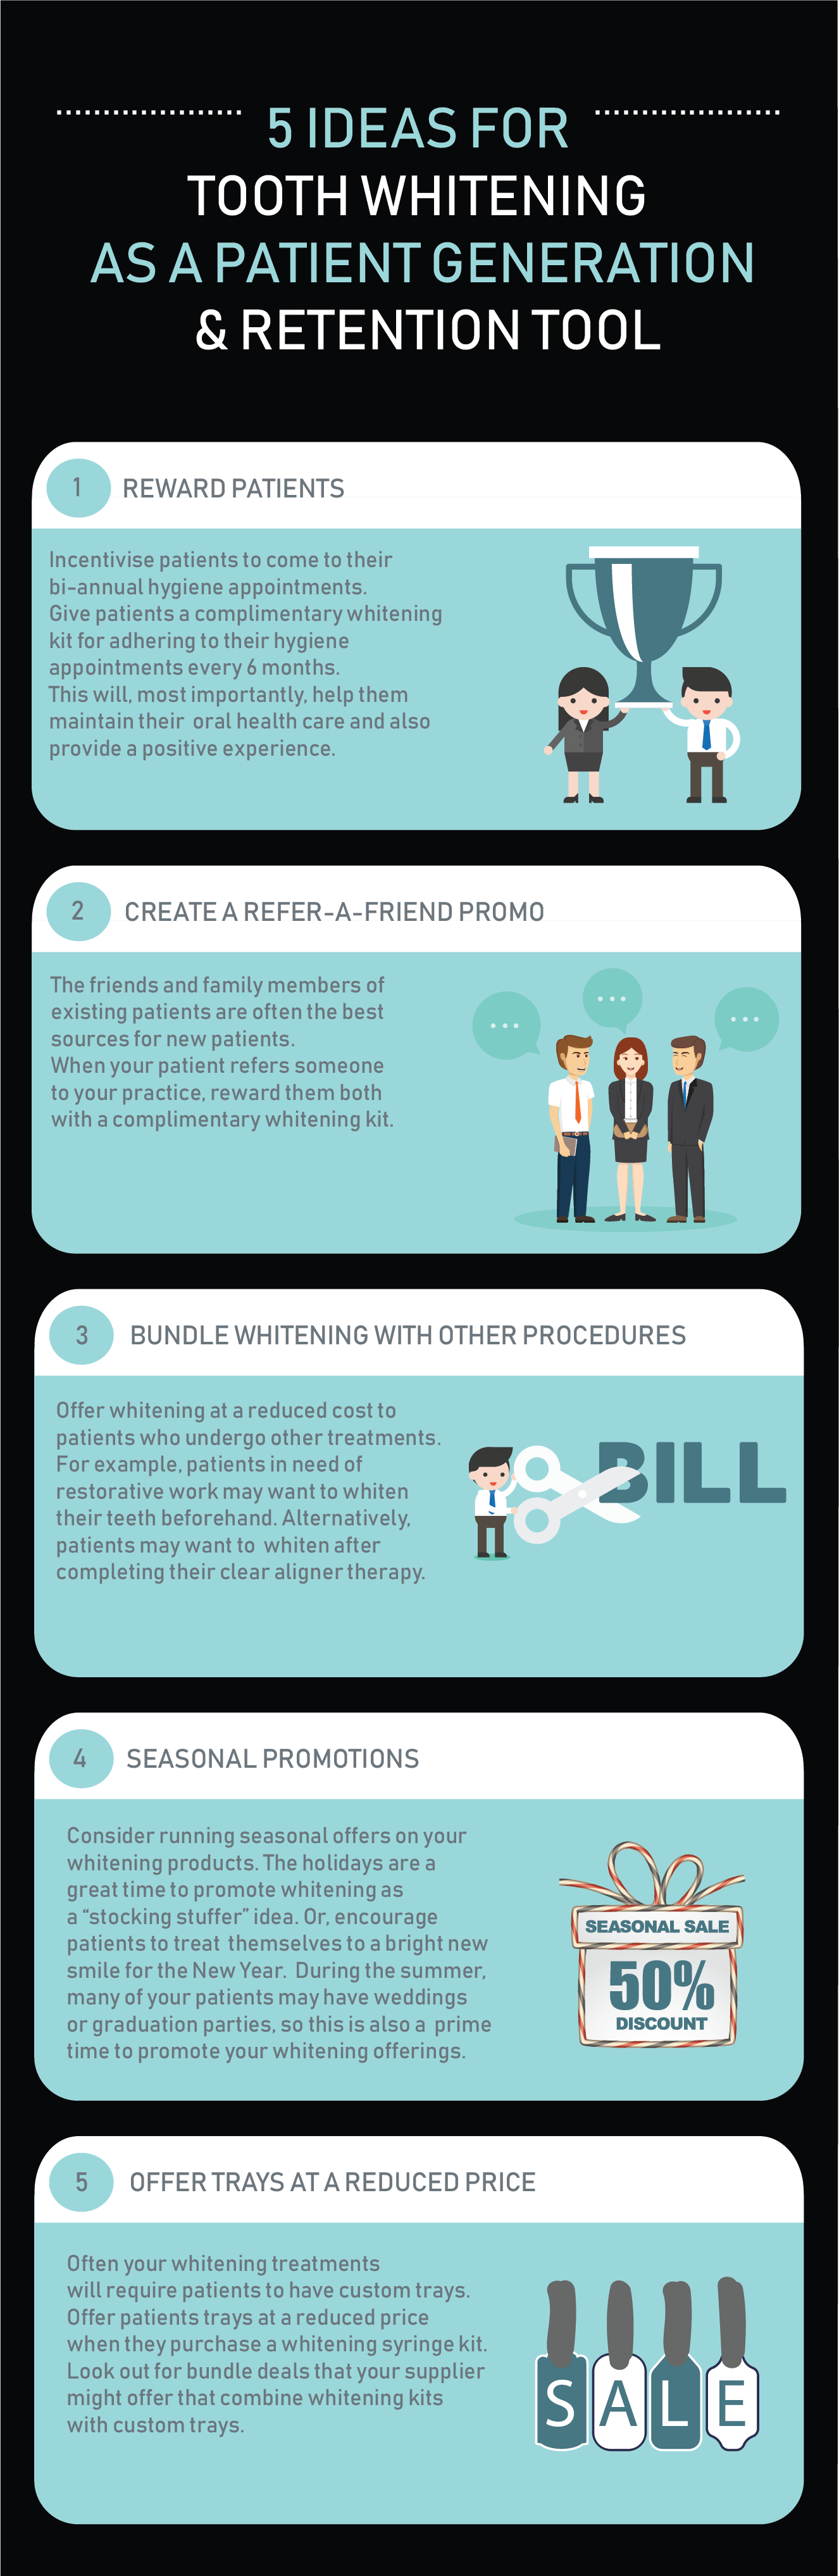 WDB Infographic - 5 ideas for patient retention